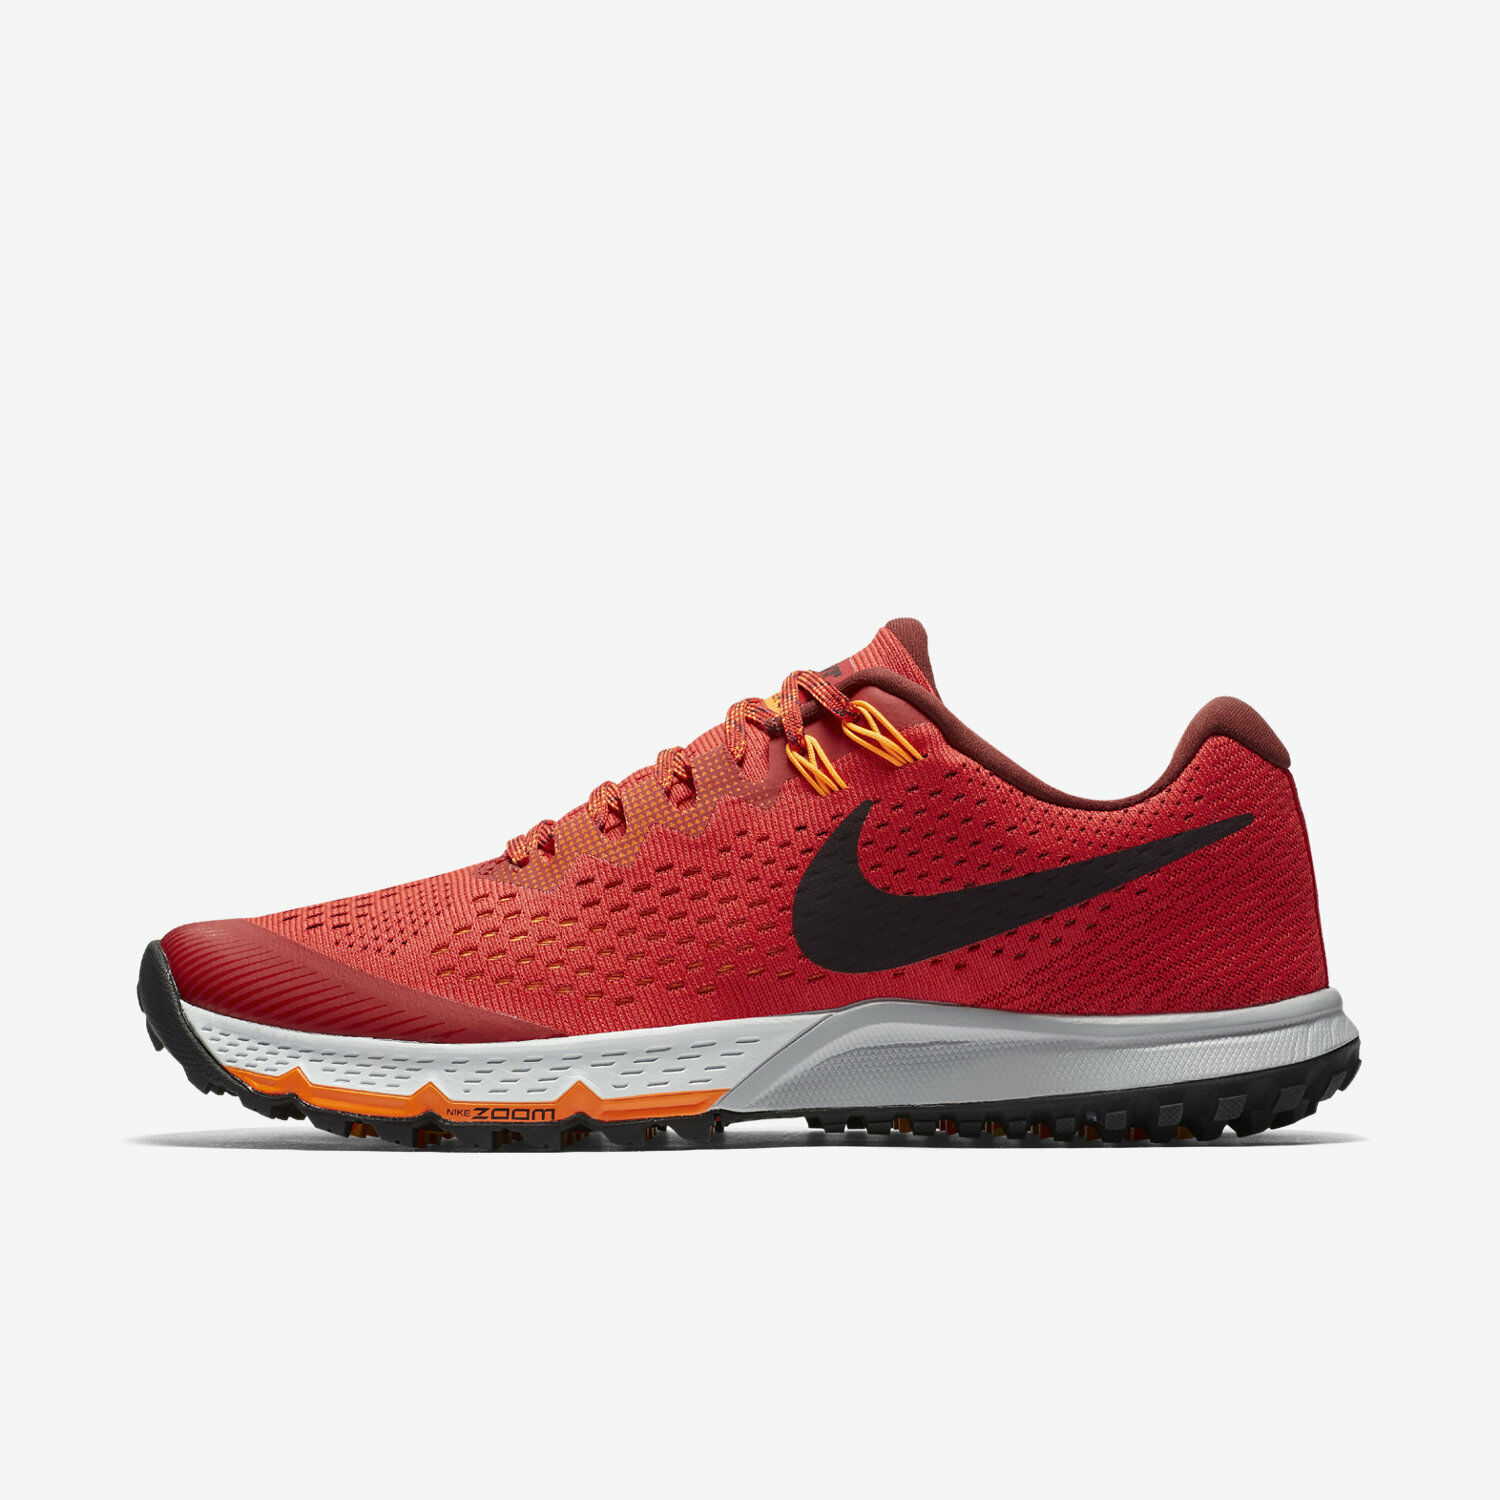 Mns Nike Air Zoom Kiger 4 Sz 10 13 Red 880563 600 FREE